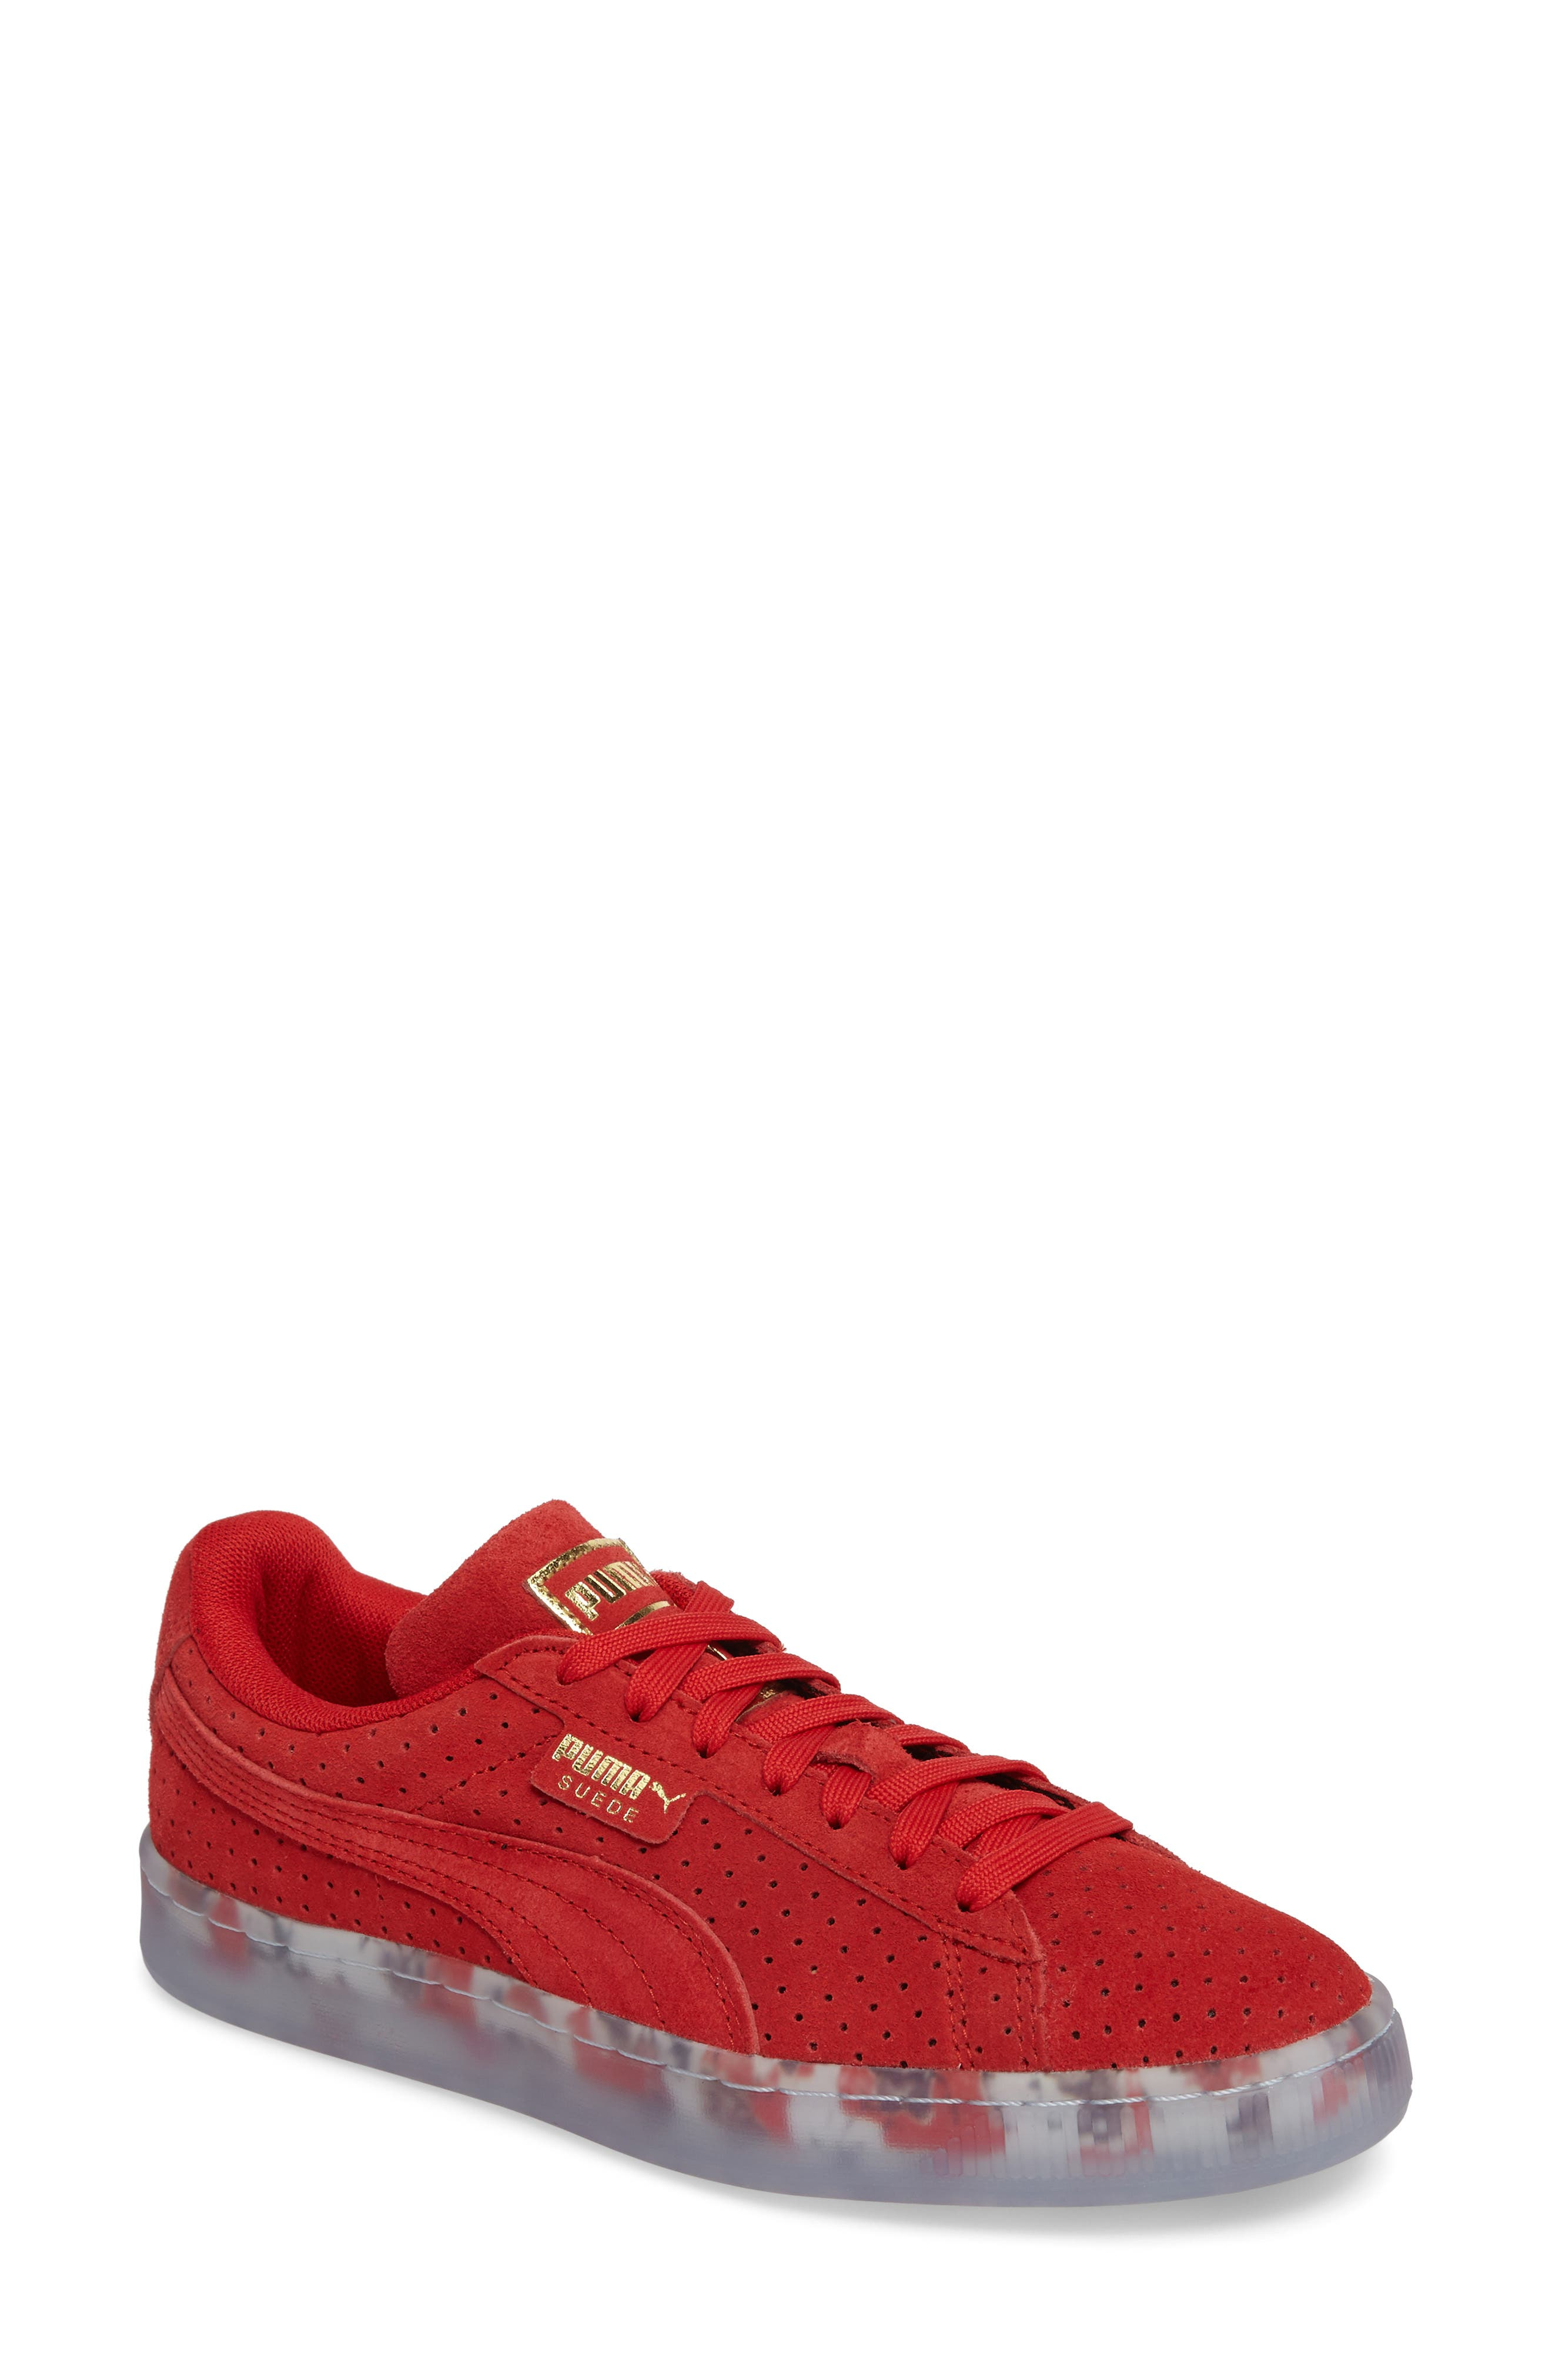 Suede Classic Perforated Sneaker,                         Main,                         color, High Risk Red/ Puma White